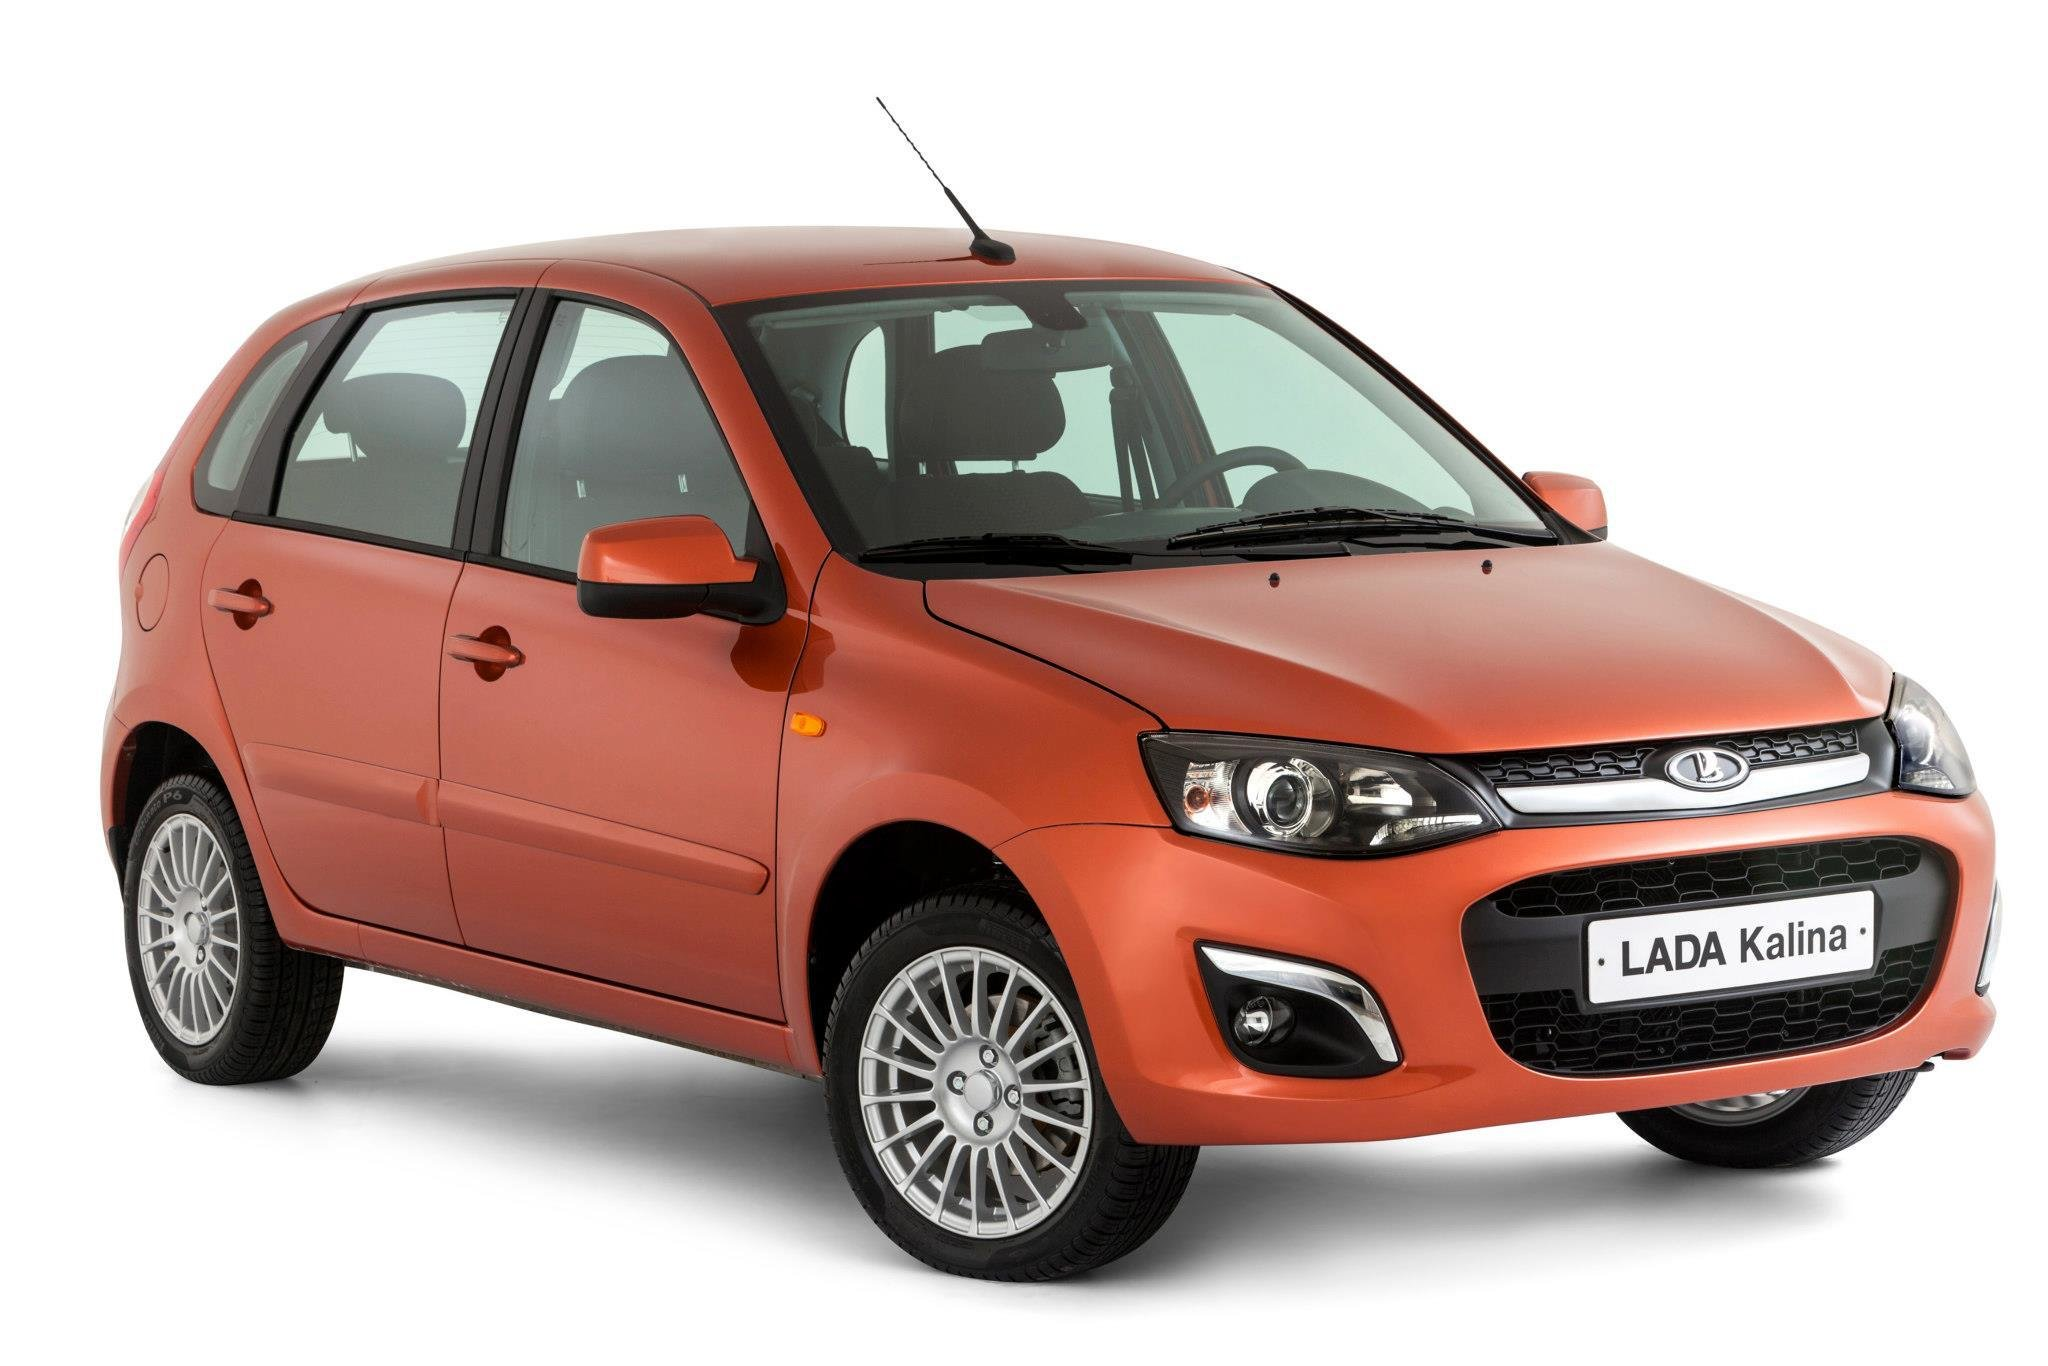 New 2013 Lada Kalina Debuts In Moscow On This Month